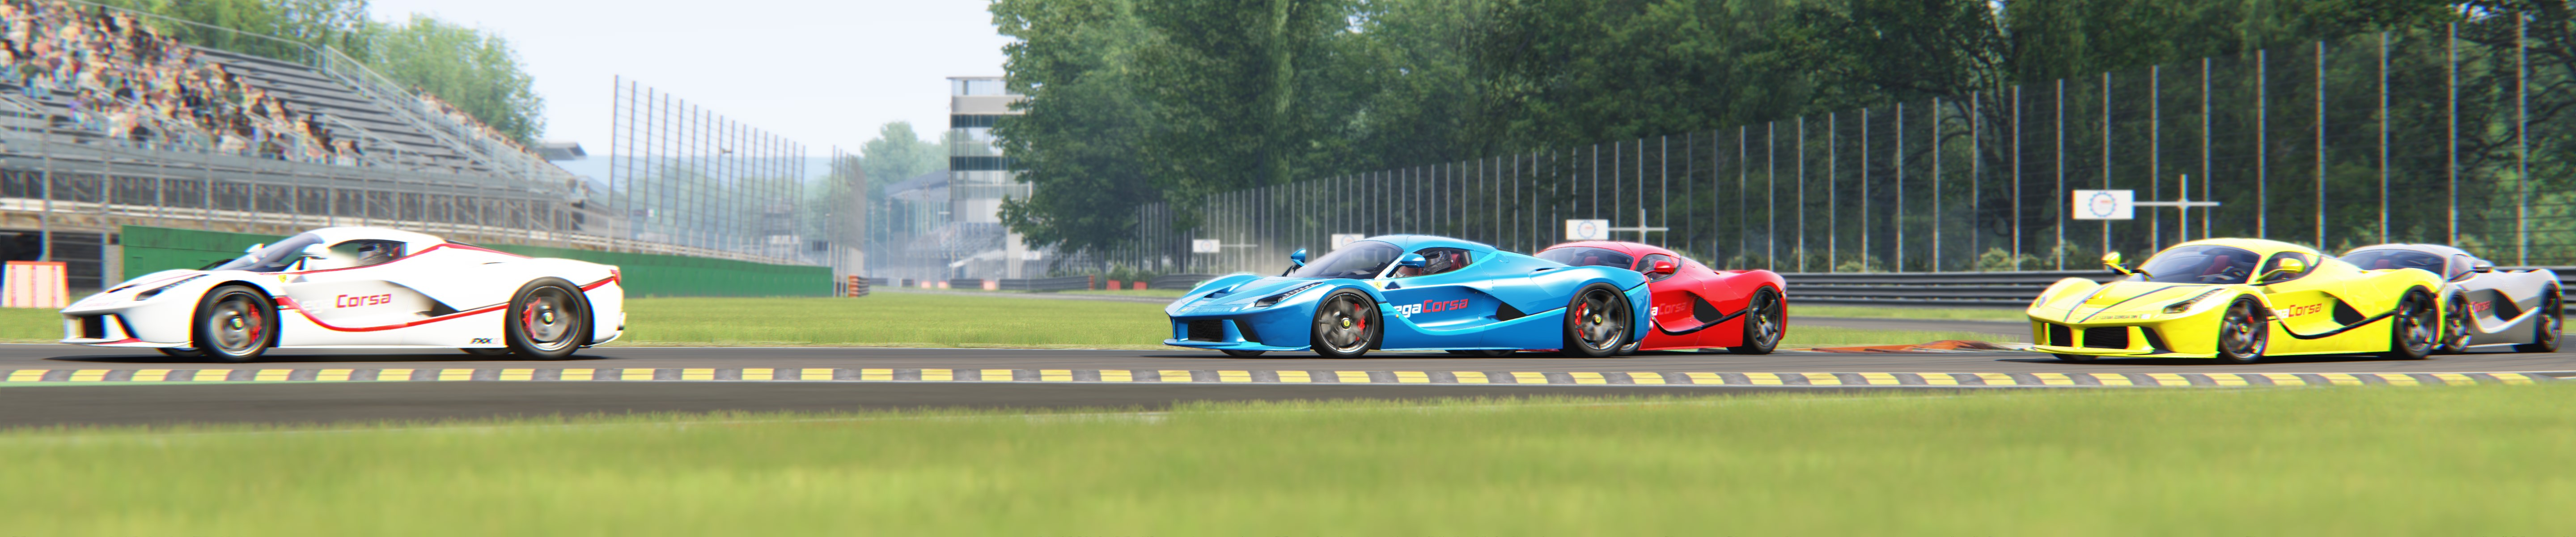 Screenshot_ferrari_laferrari_monza_16-3-117-21-27-37.jpg